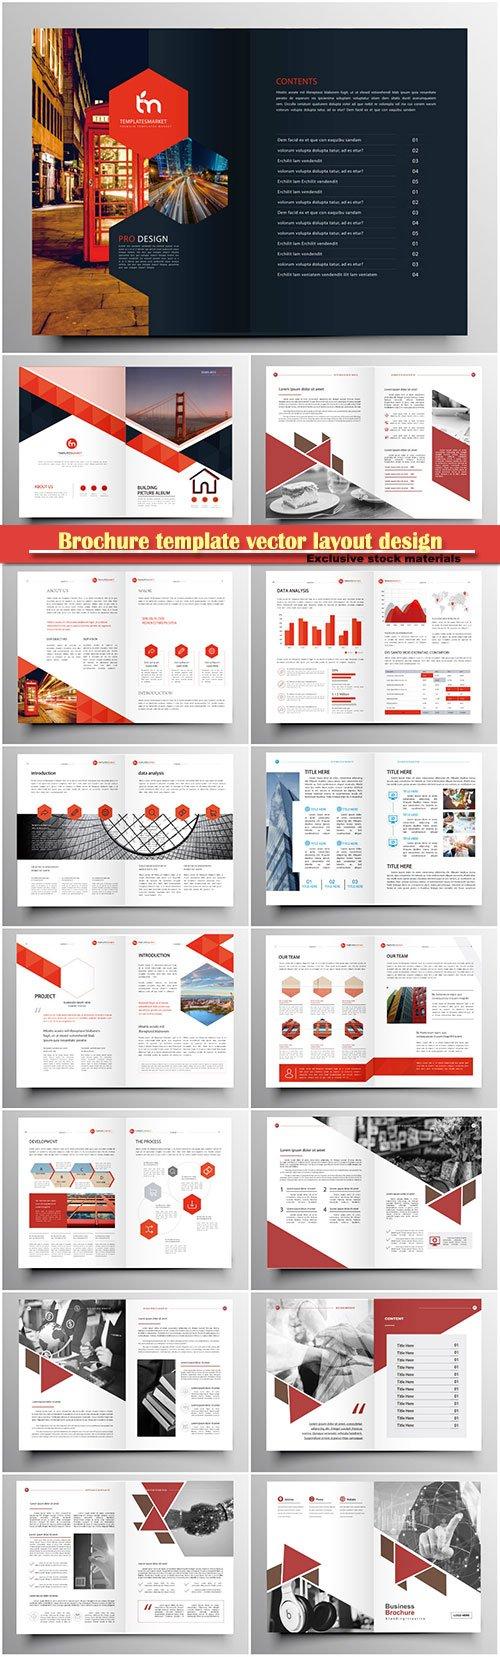 Brochure template vector layout design, corporate business annual report, magazine, flyer mockup # 130